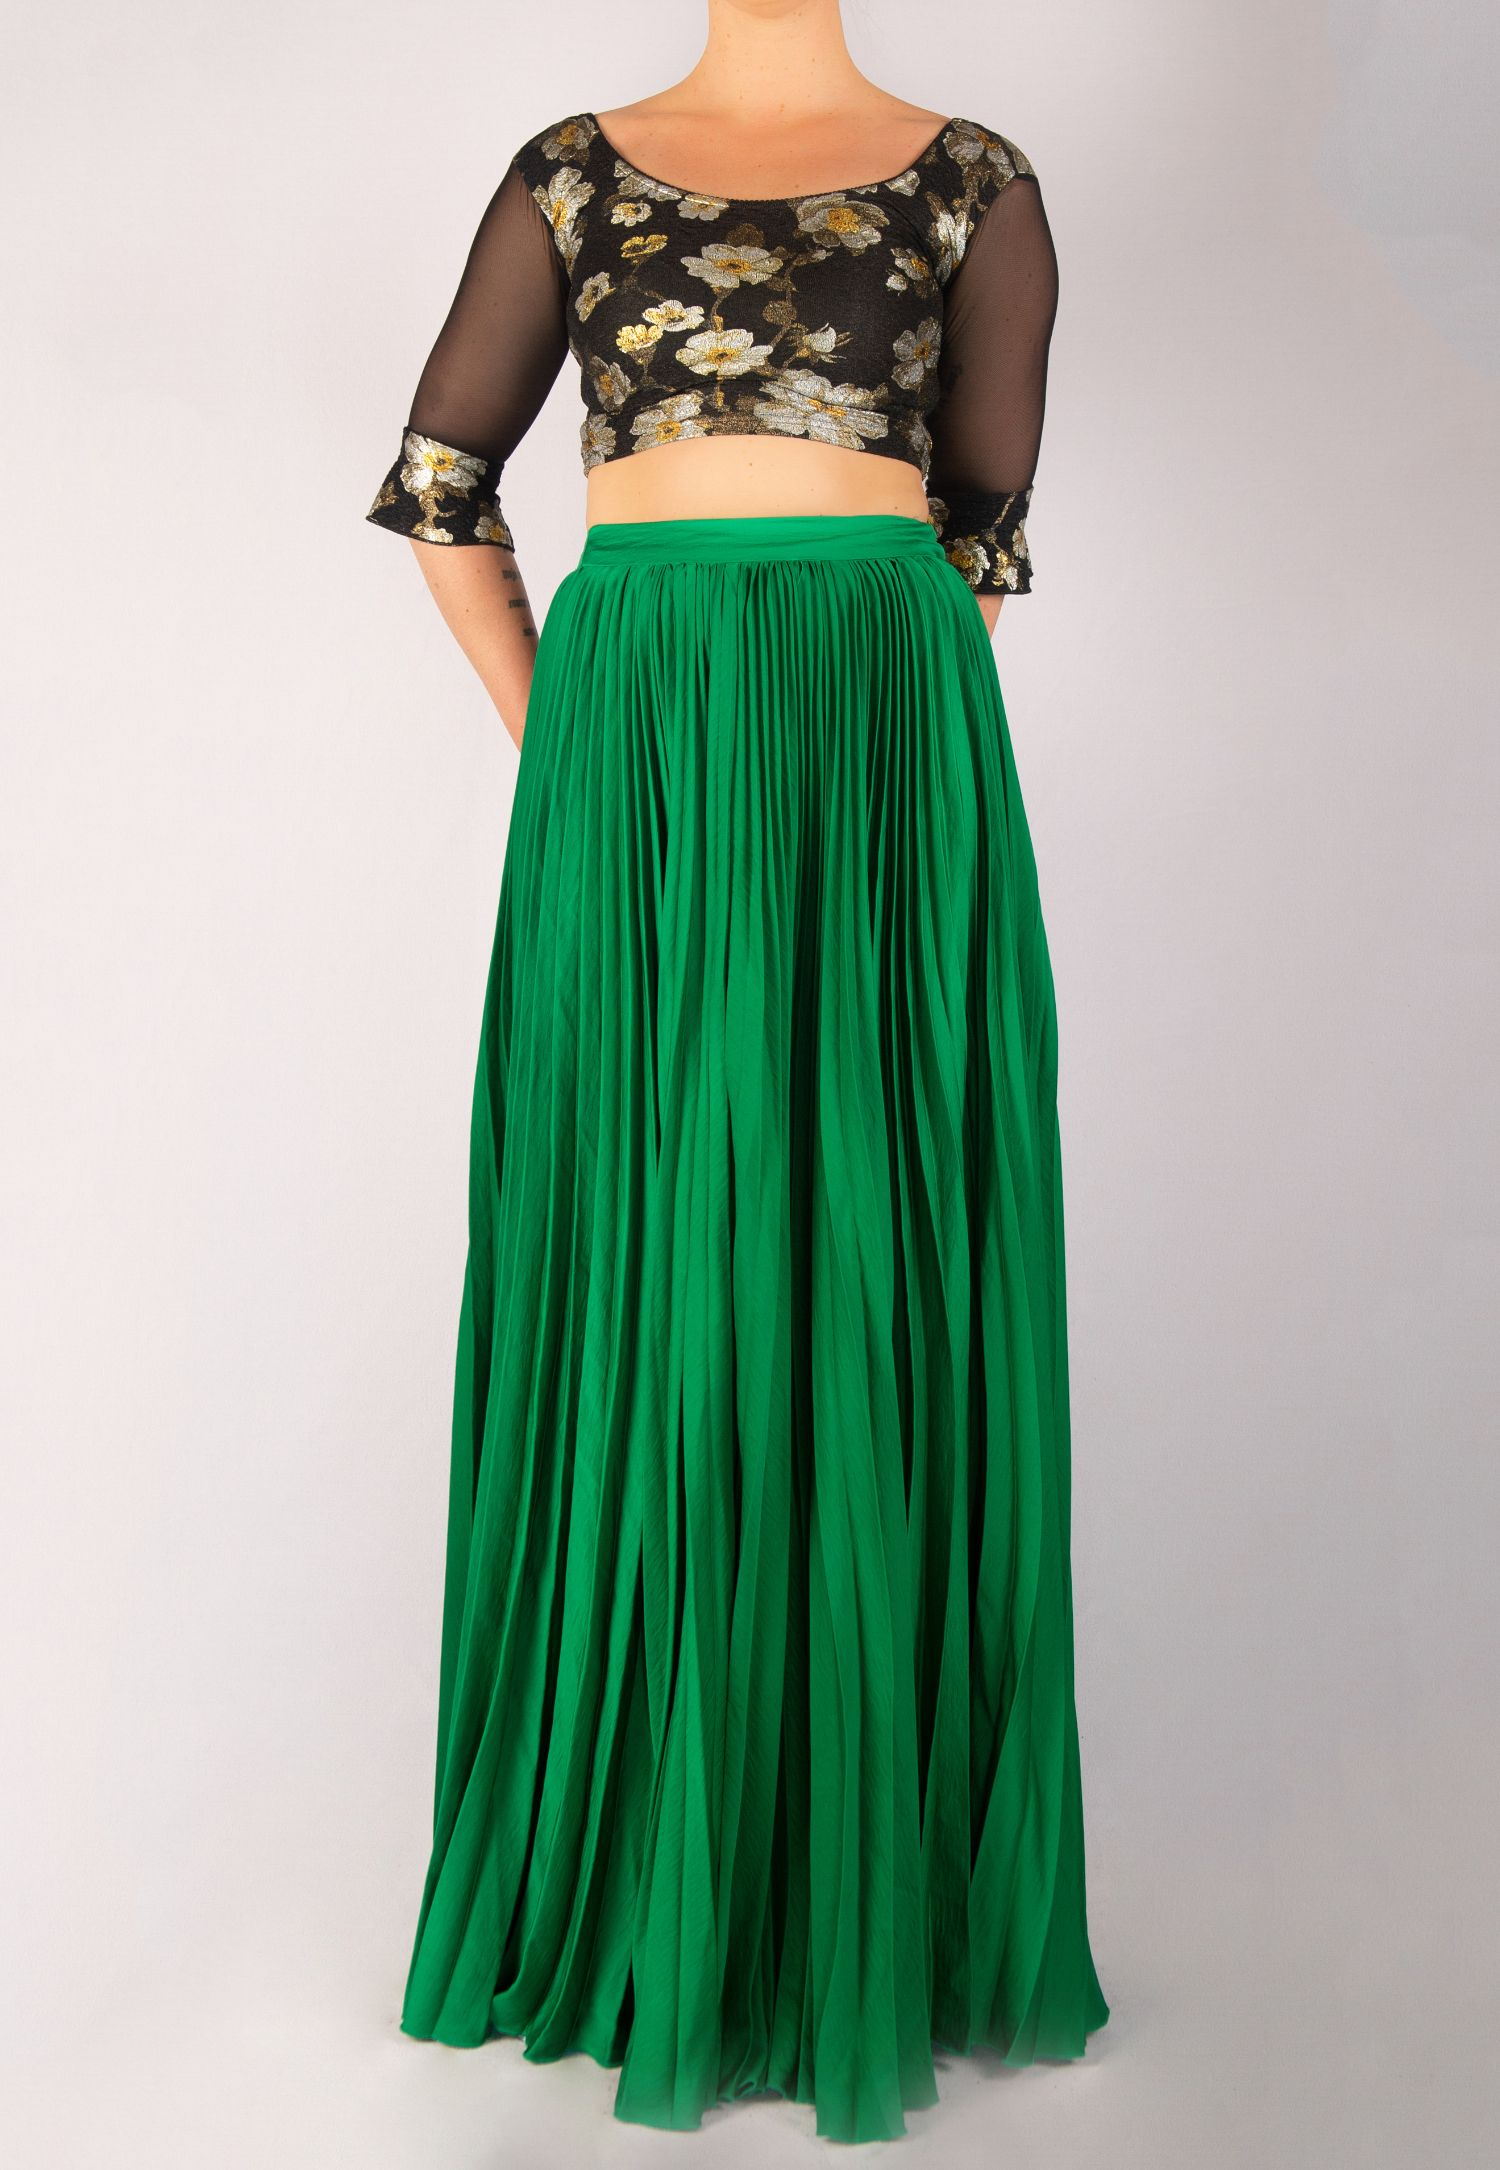 EMERALD GREEN SKIRT AND BLACK TOP SET